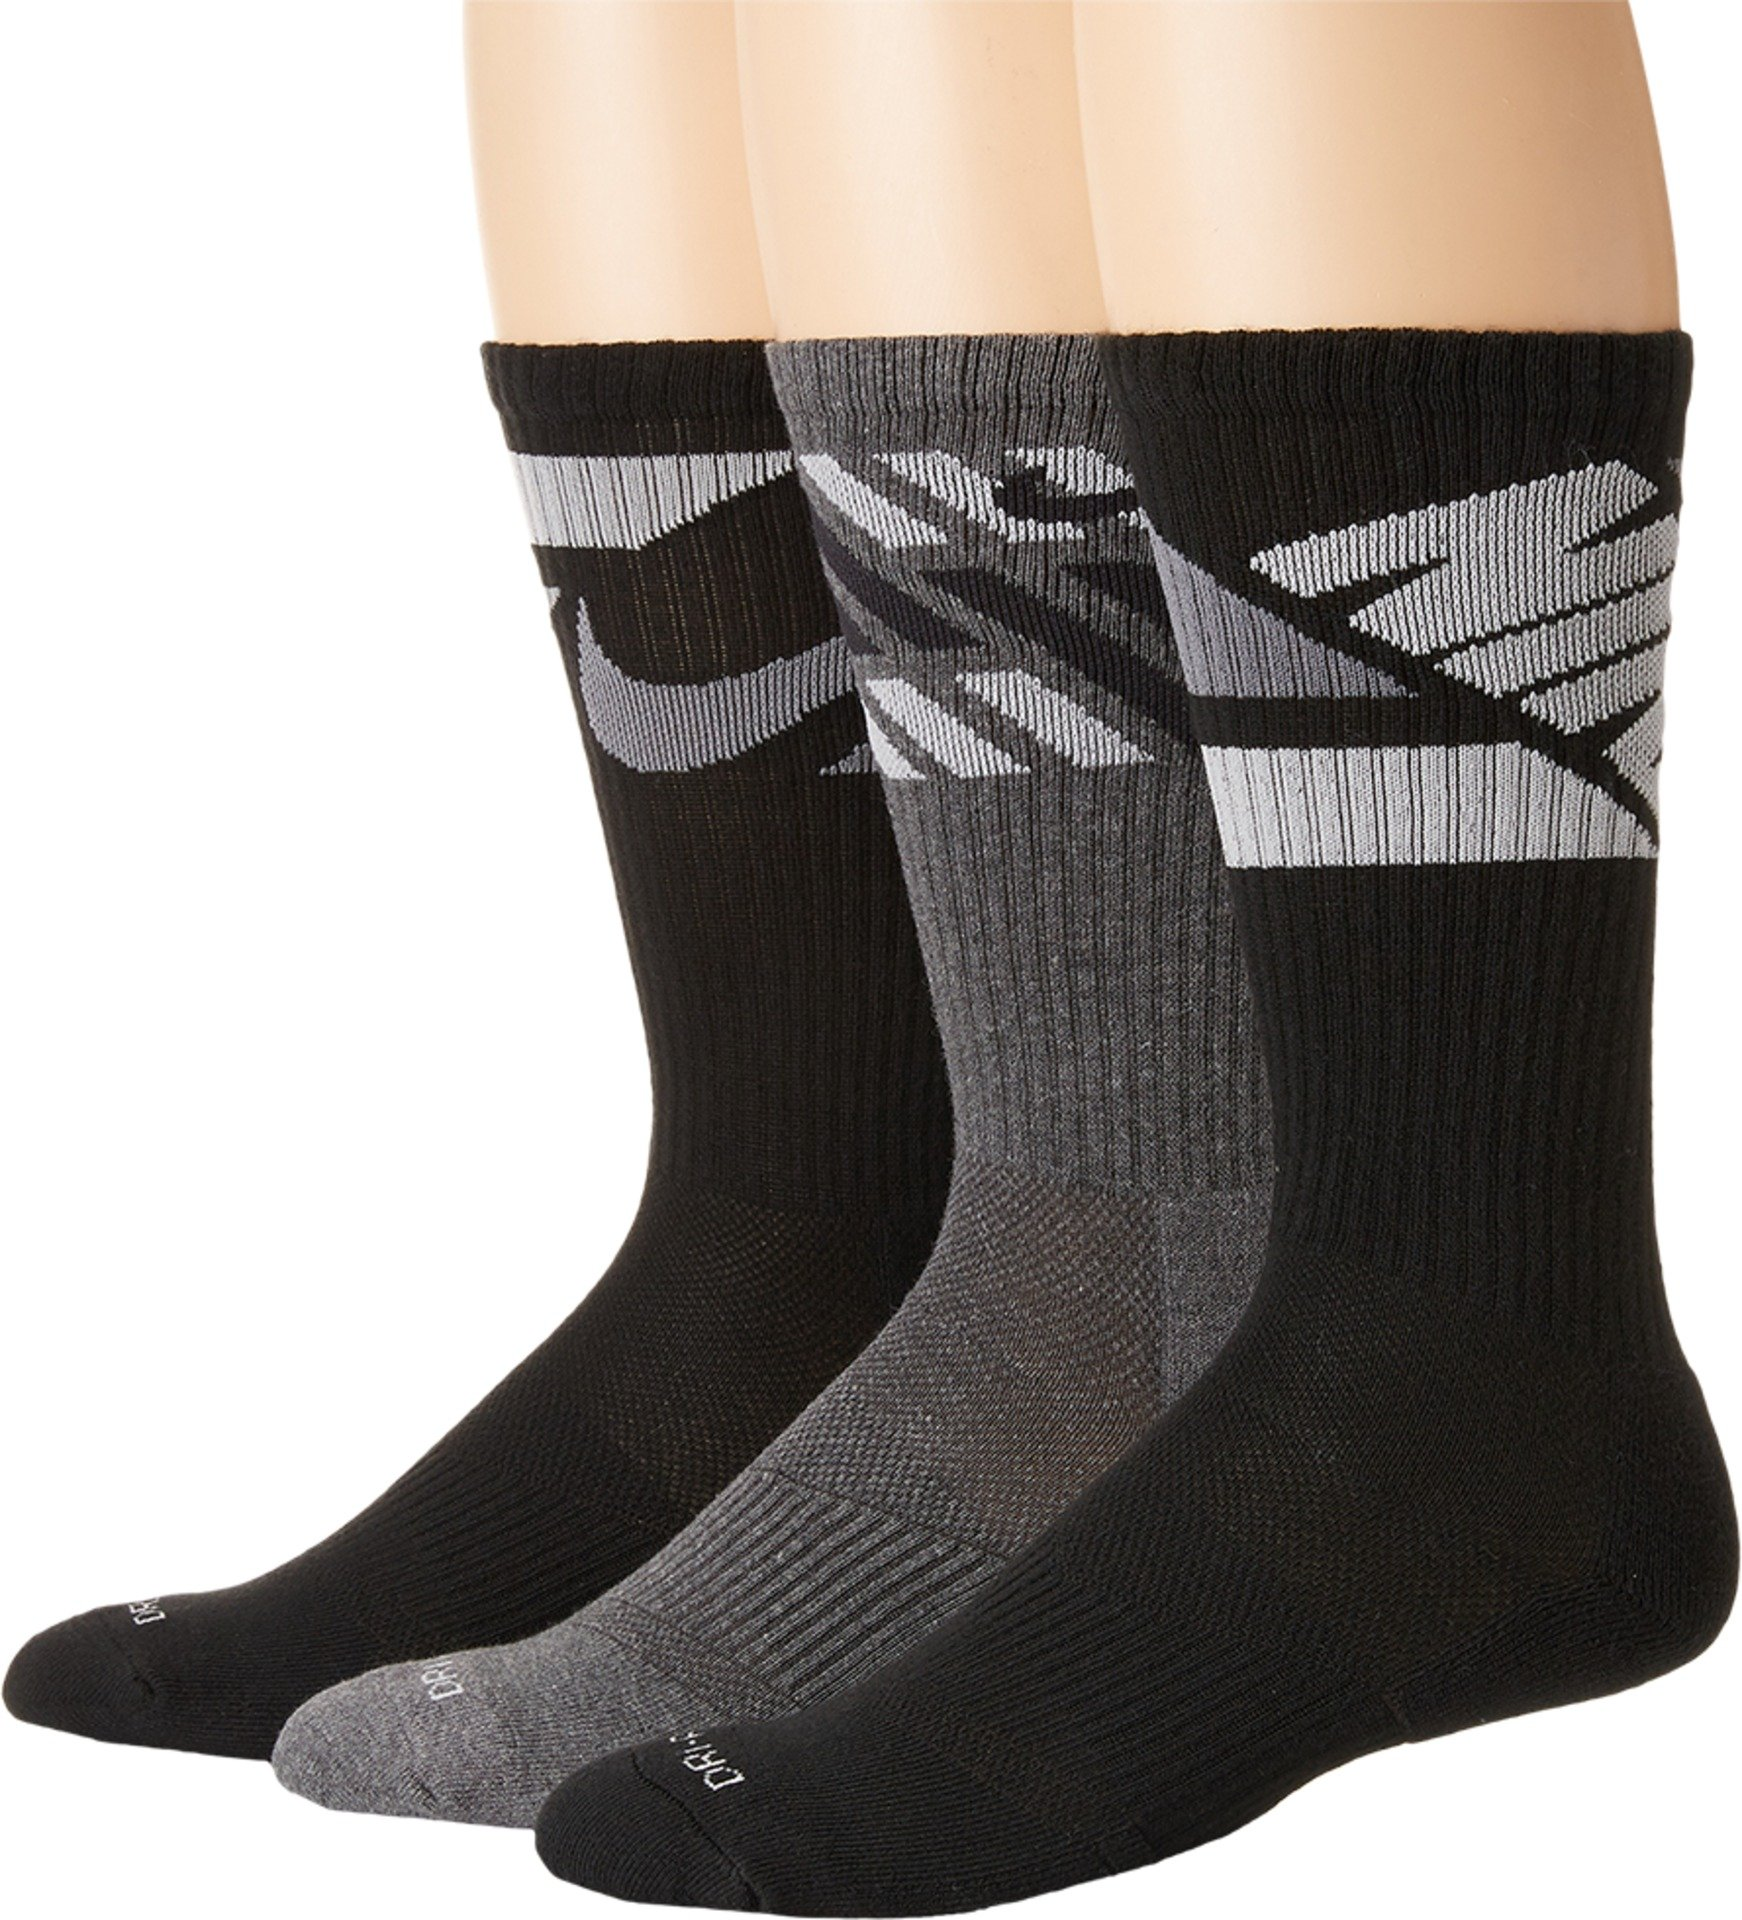 Nike Men's 3-pk Dri-fit Cushioned Crew Socks for shoe sizes 8-12 and 12-15 (Large, Multicolor 5) by Nike